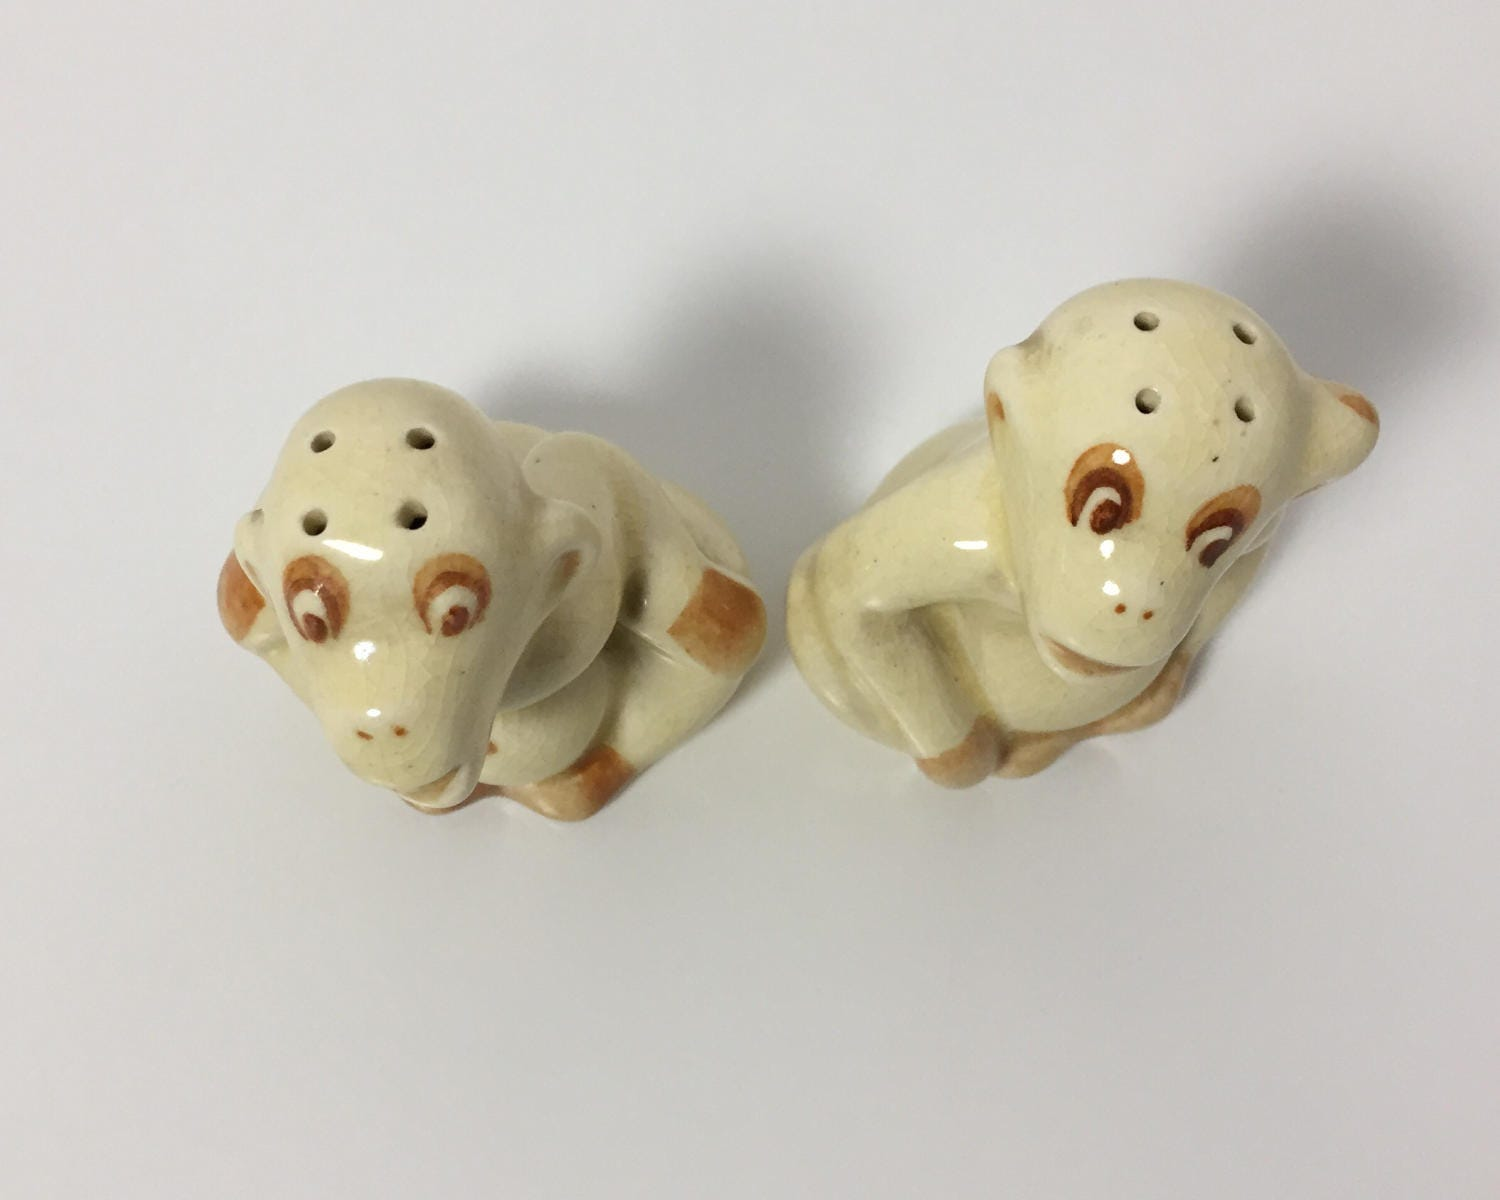 Vintage Novelty Chimpanzee Or Monkey Salt And Pepper